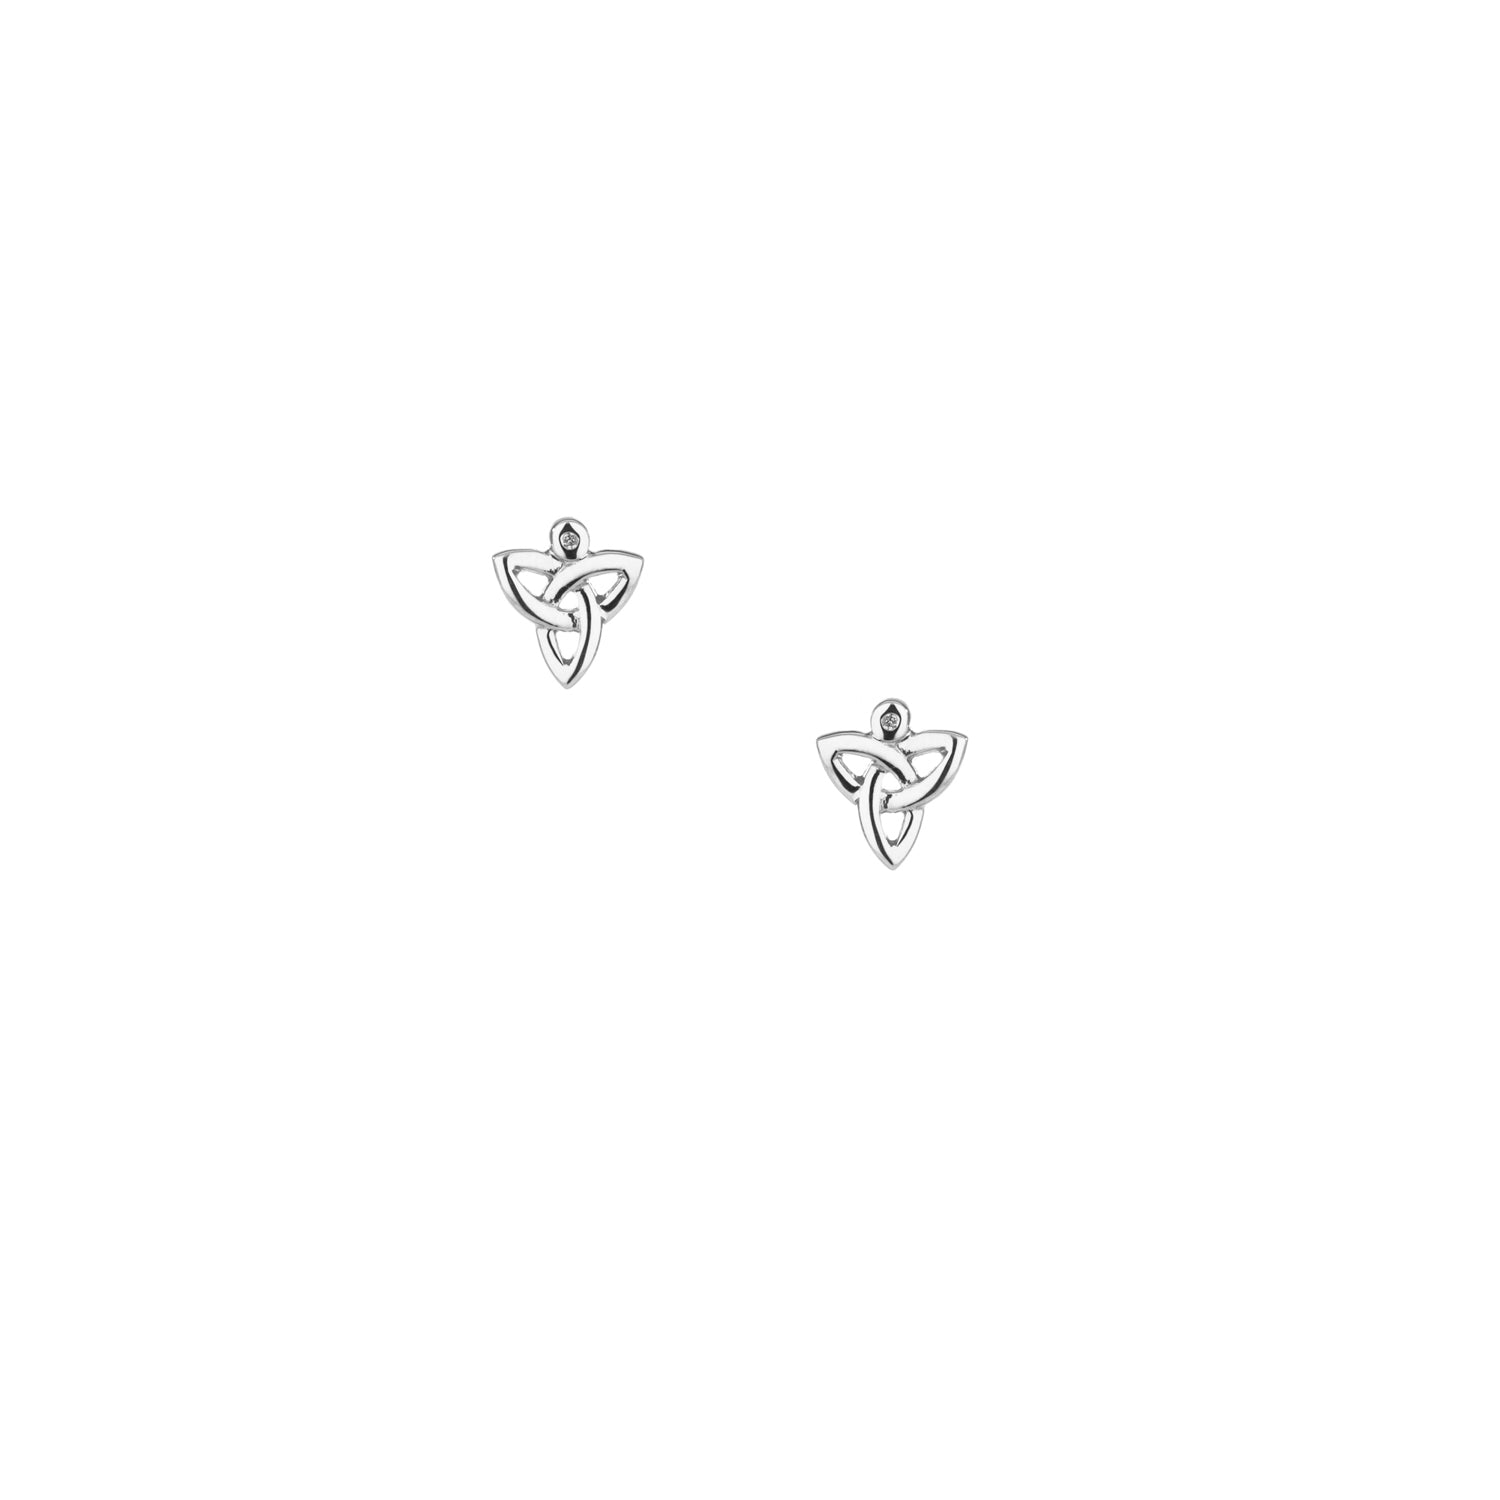 Earrings Diamond (1mm) Trinity Post Earrings from welch and company jewelers near syracuse ny